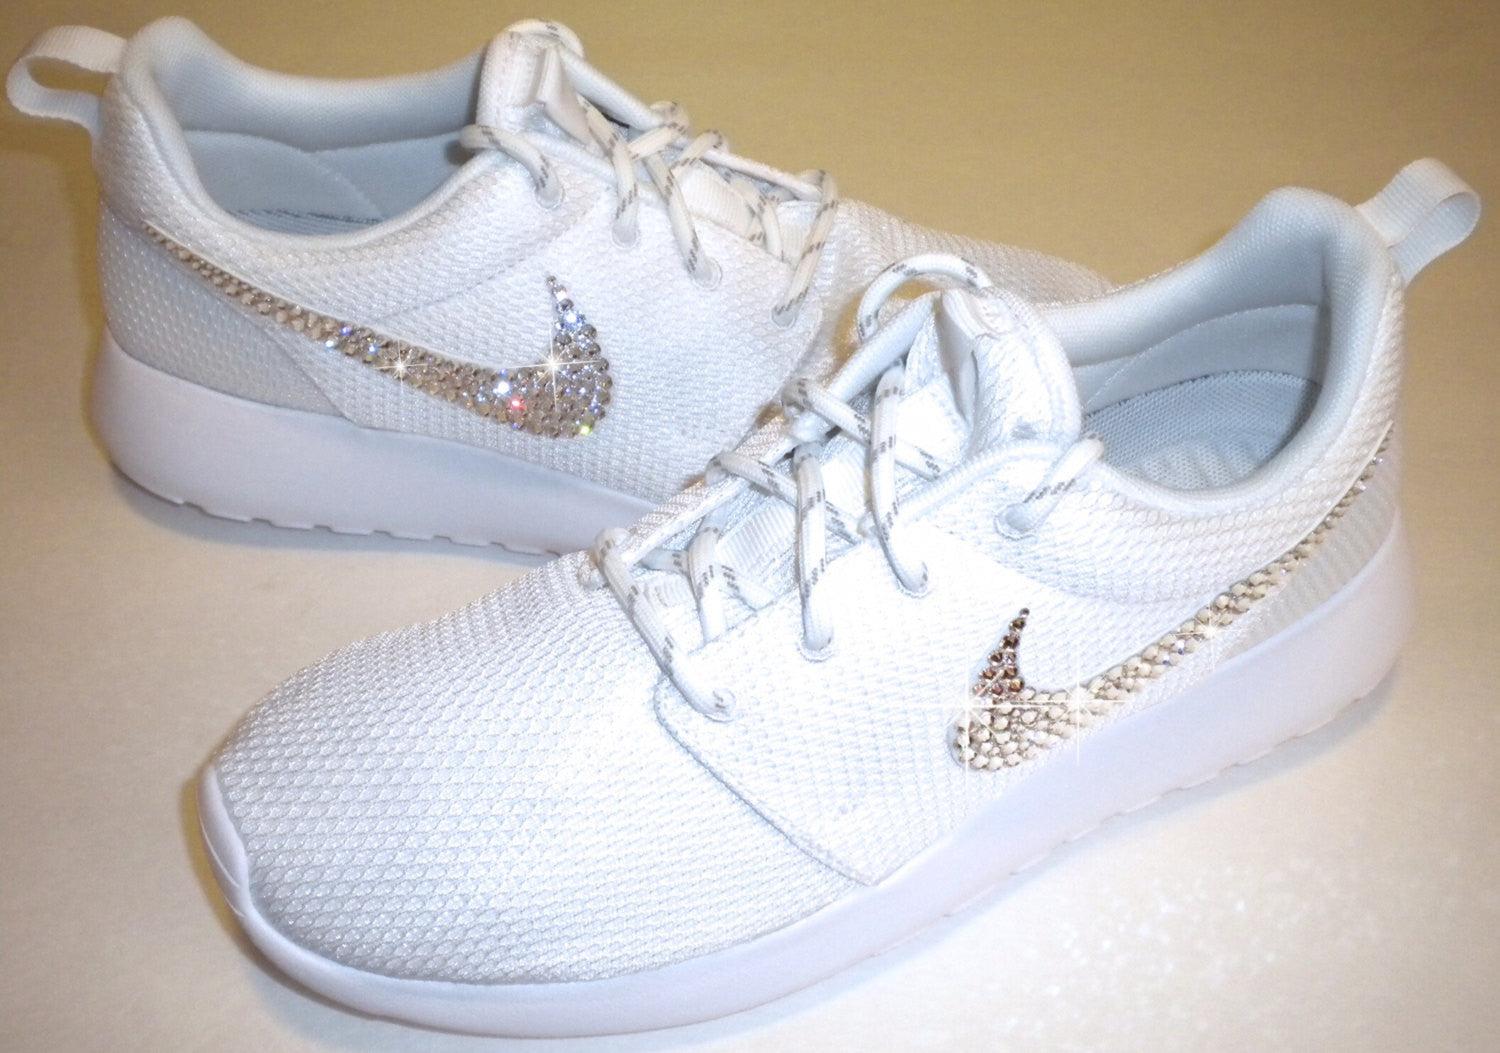 All White  Bling Nike Roshe One Shoes Bedazzled with Authentic Swarovski  Crystals for maximum sparkle! 0284431992